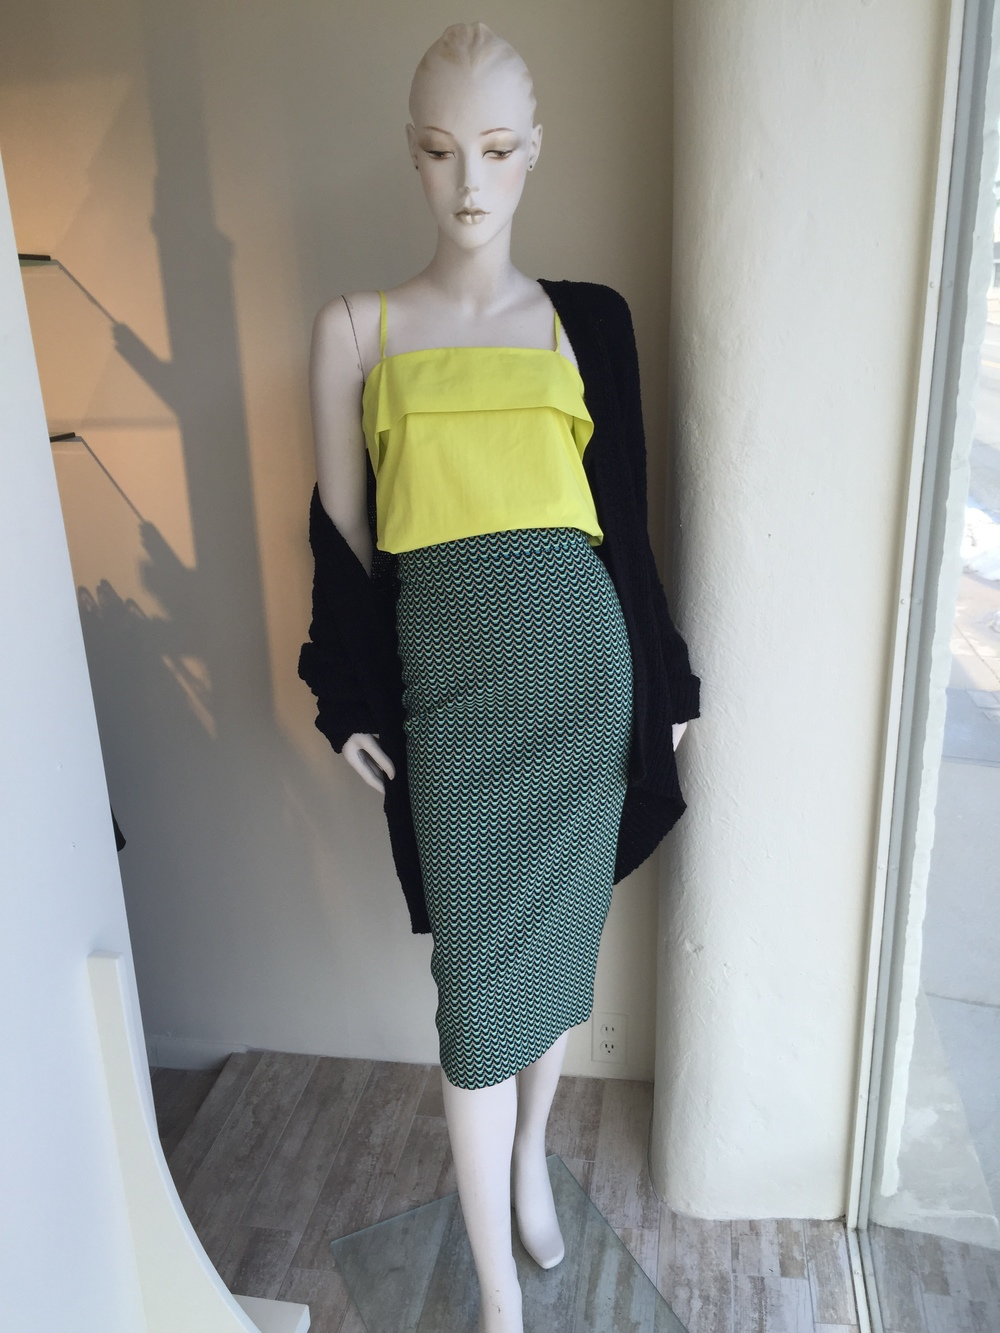 With hemlines getting longer, we love this long tapered pencil skirt from Hache in a geometric pattern.  The chartreuse cotton cami picks up the color in the skirt and a nubby knit cardi from Nili Lotan completes the look.